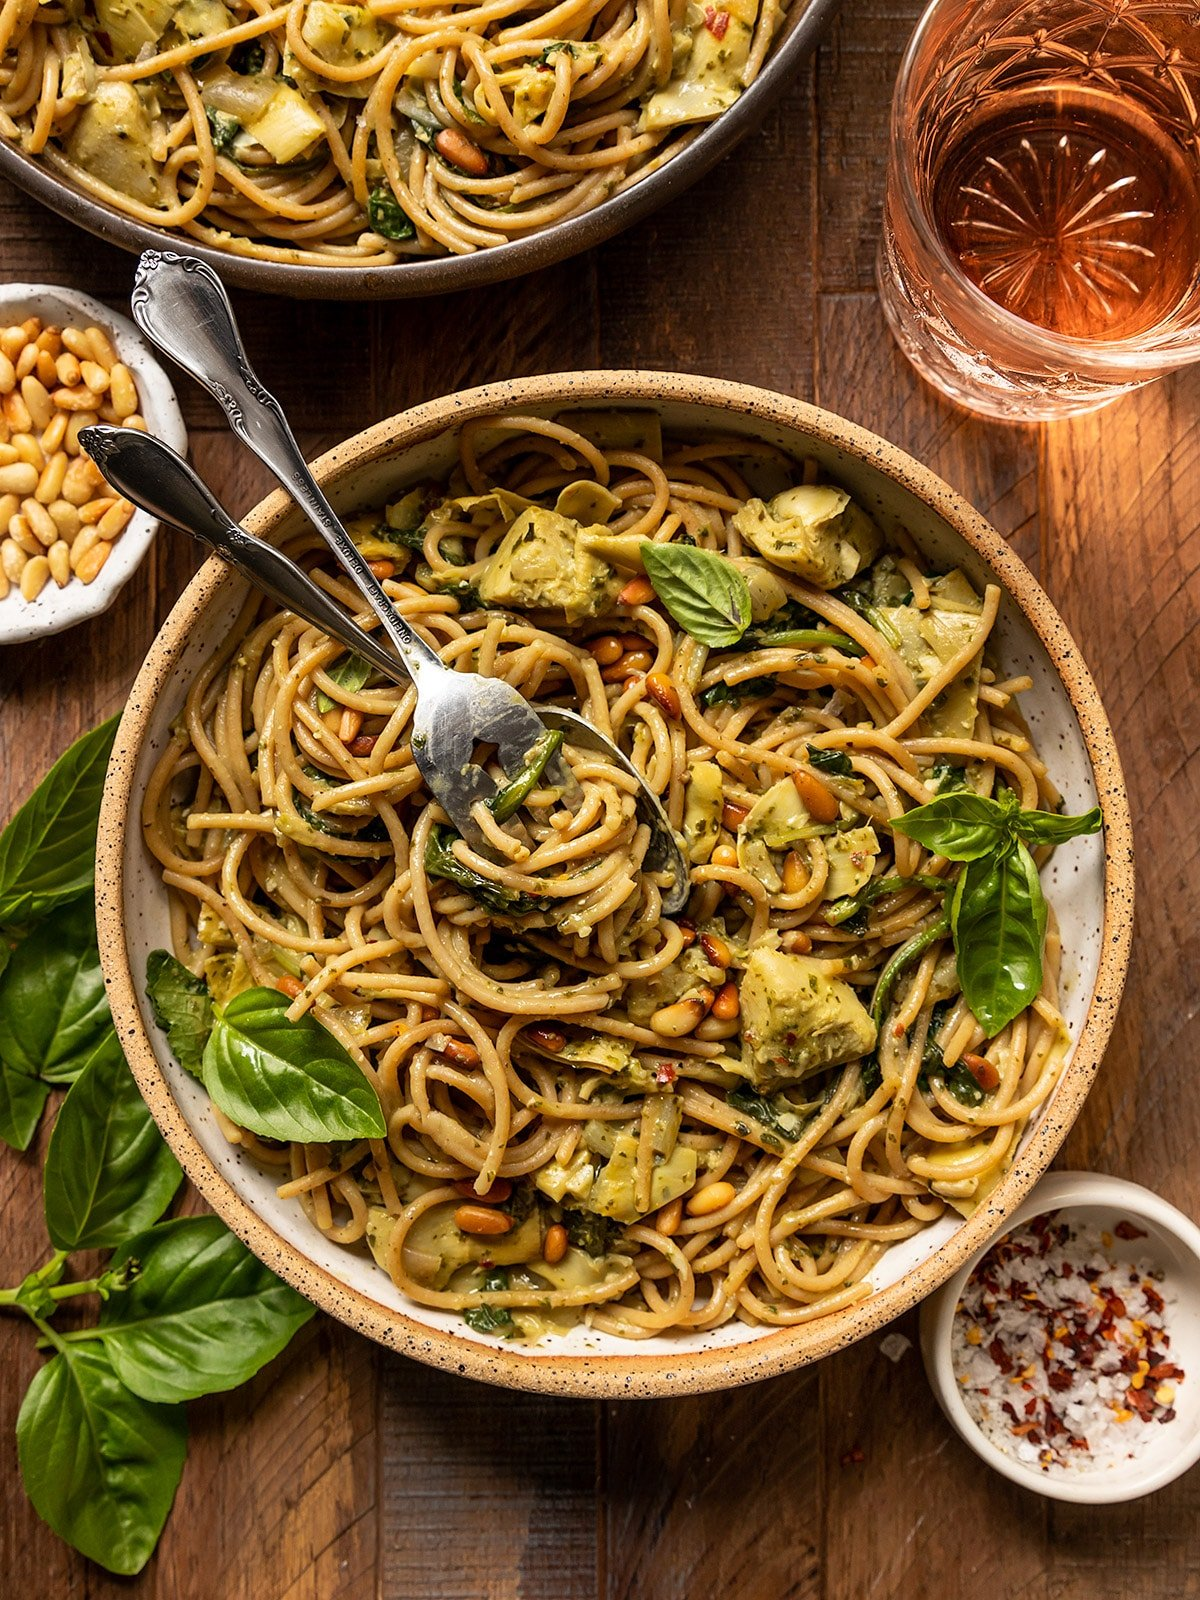 bowl of pasta with spinach artichoke, basil, pine nuts, and two forks swirled in noodles